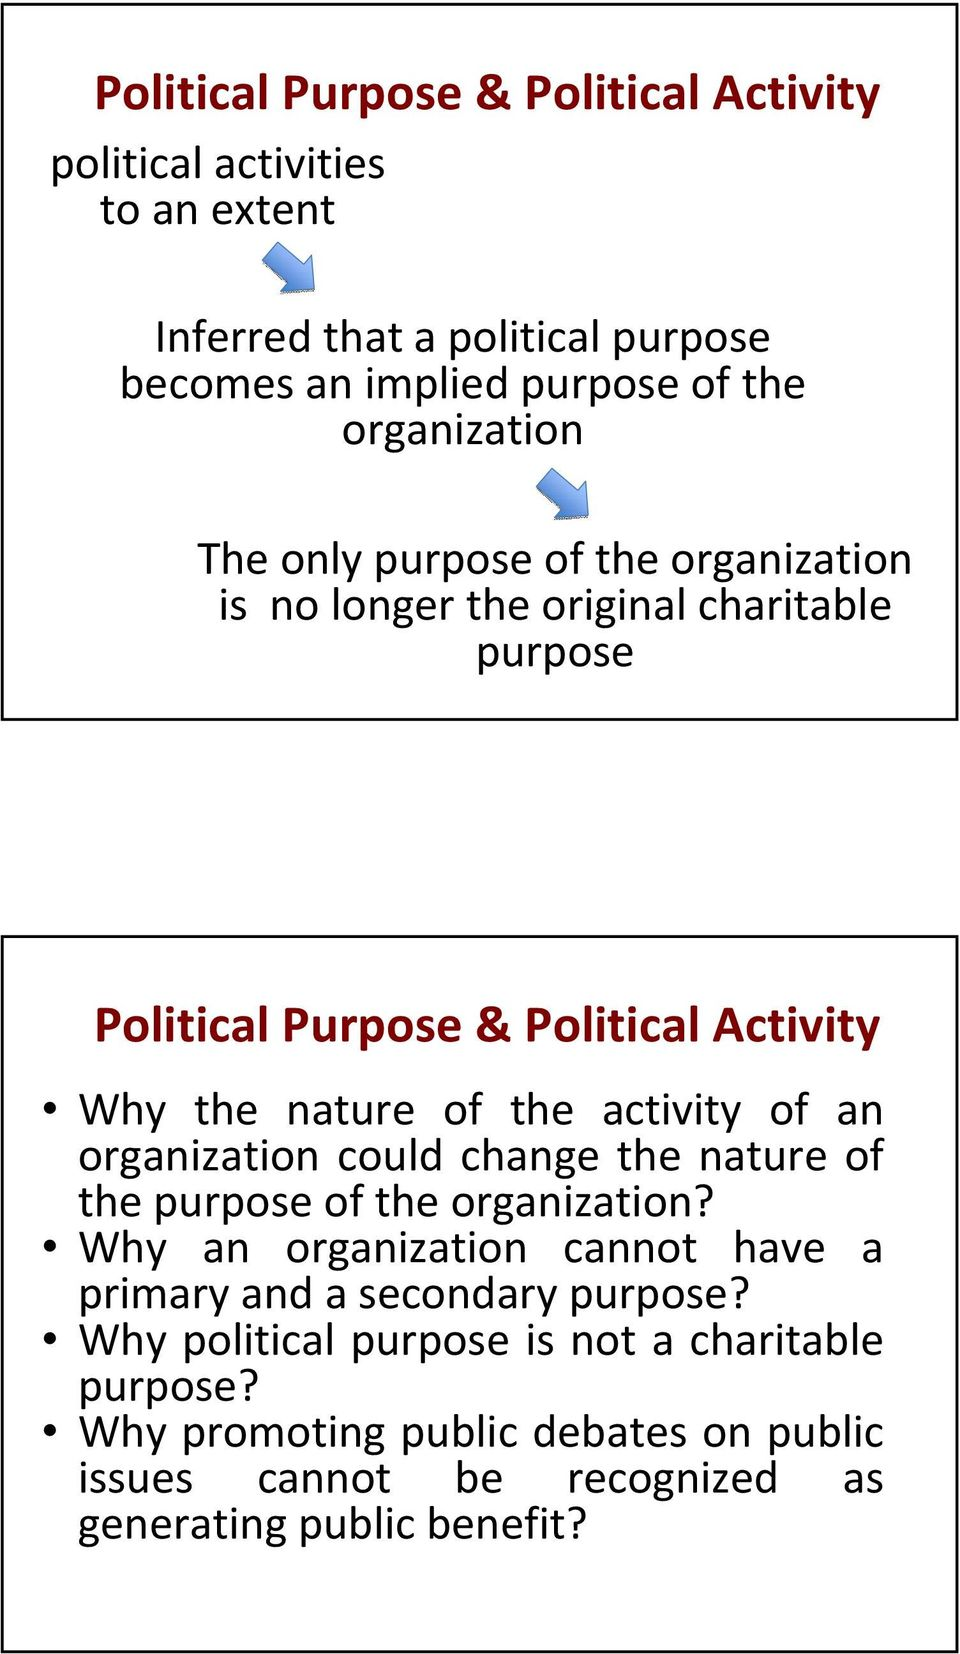 of the activity of an organization could change the nature of the purpose of the organization?